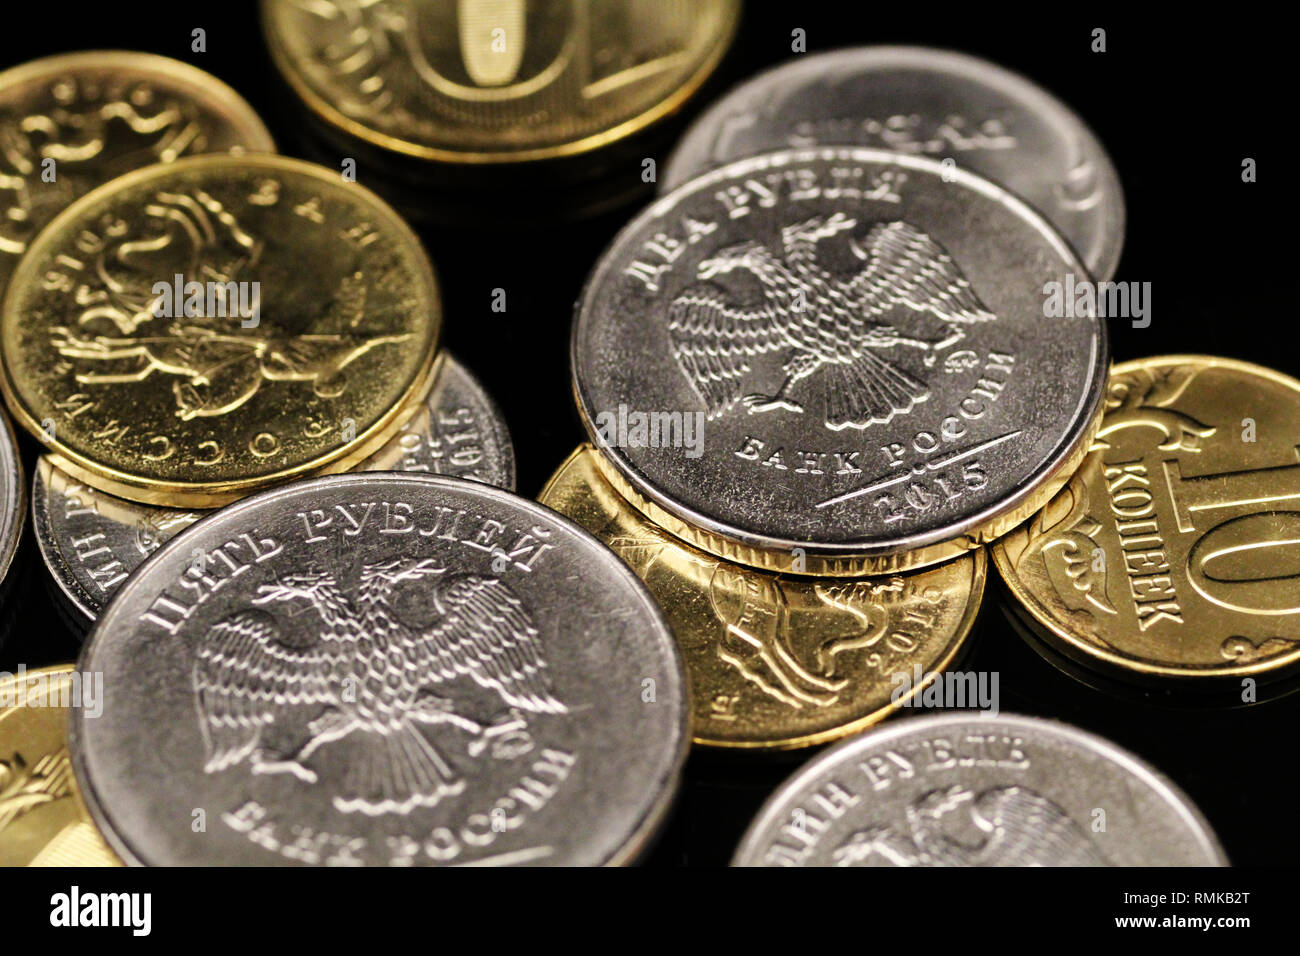 A macro image of an assortment of Russian Federation coins on a reflective black background - Stock Image